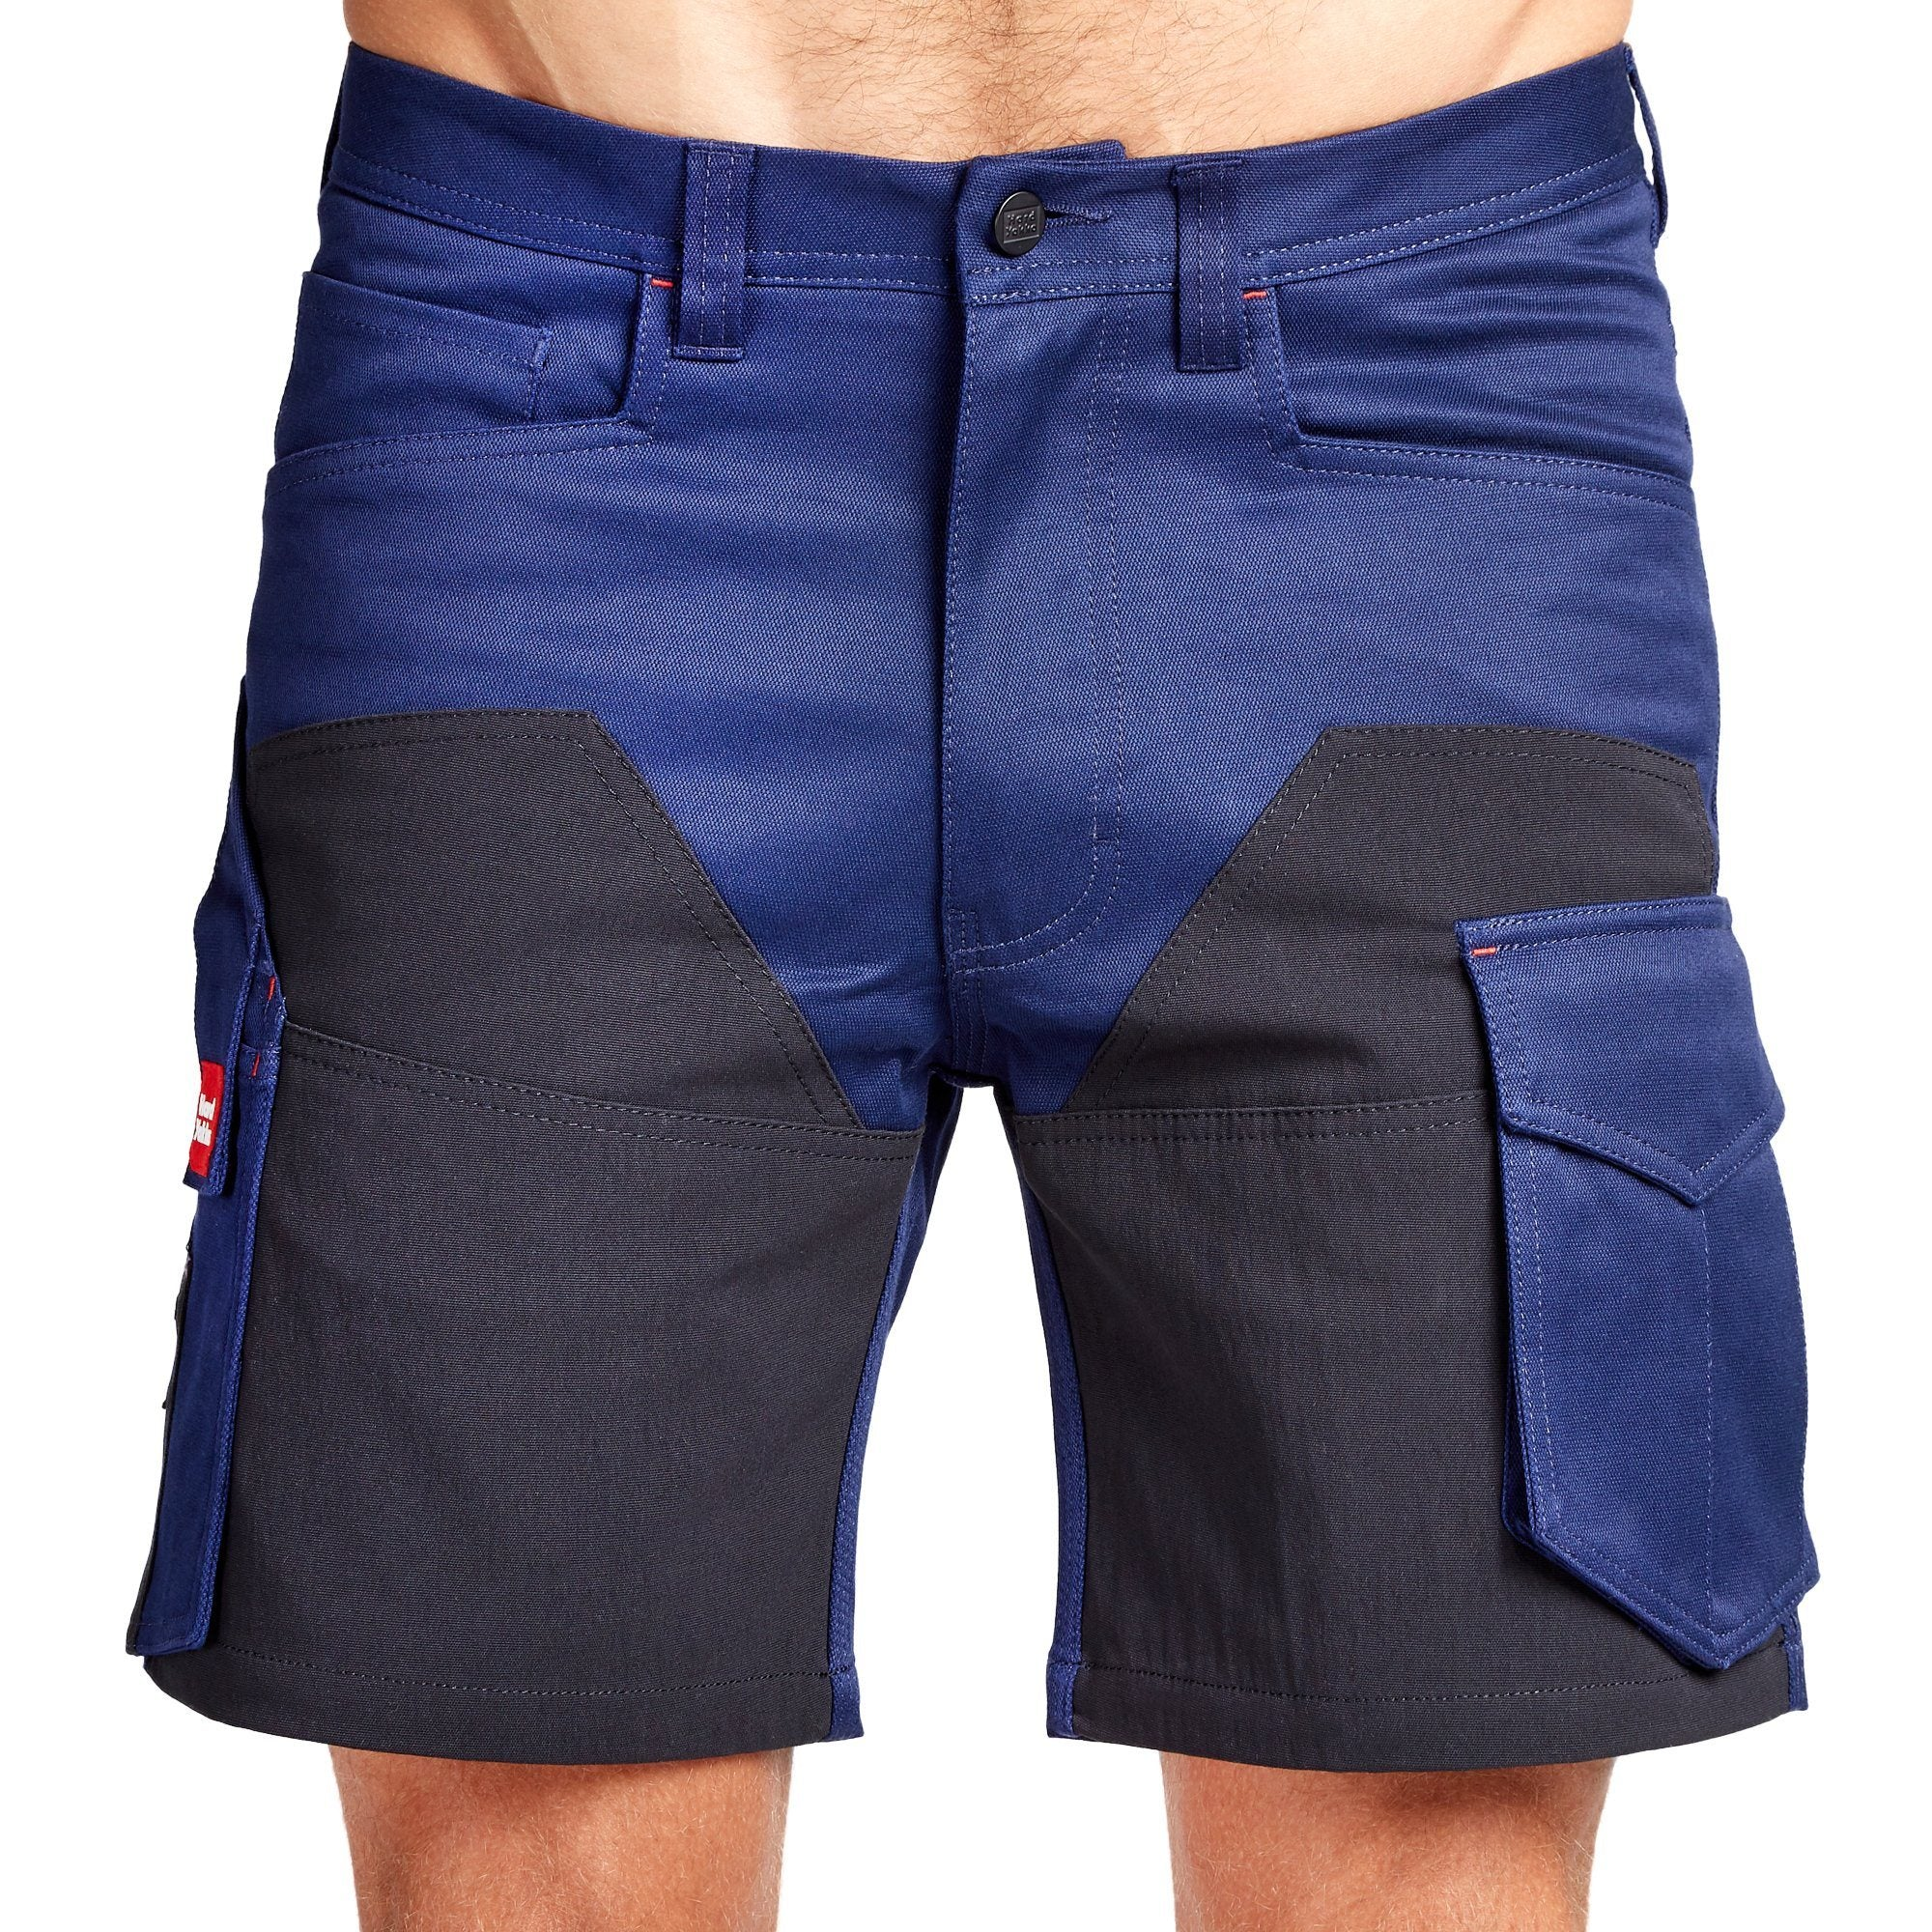 Hard Yakka Legends 3D Stretch Cargo Short - Navy/Black Workwear Hard Yakka